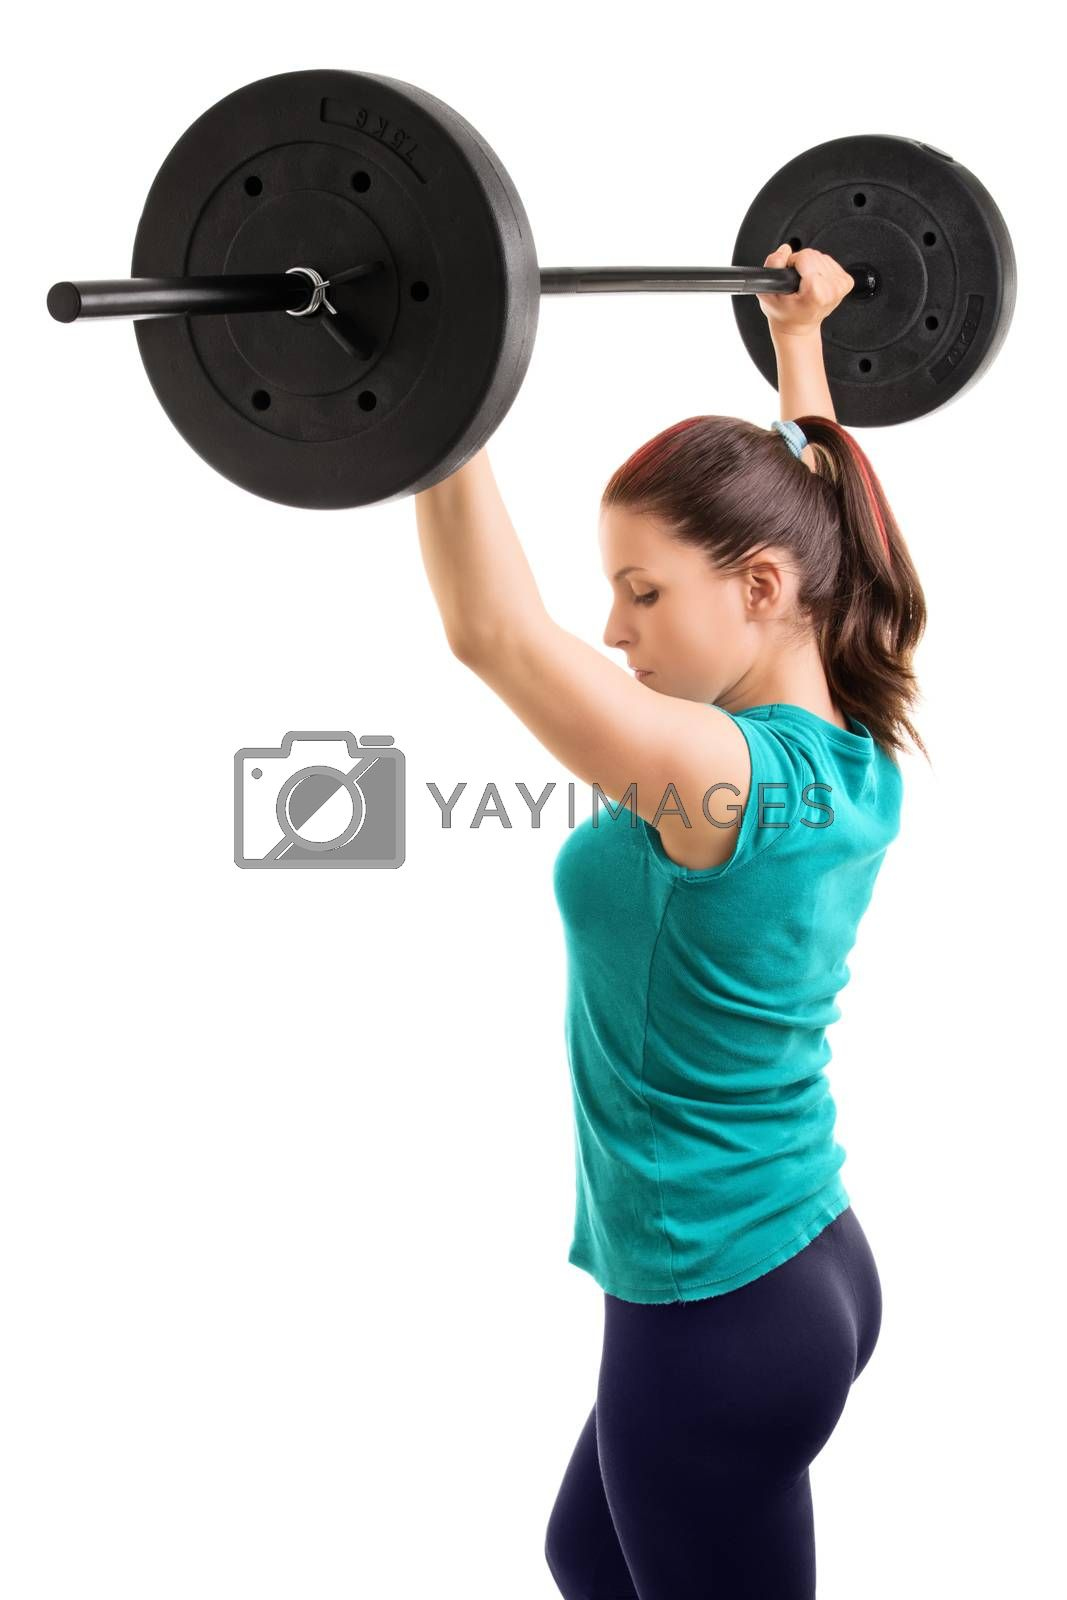 And hold! Young girl athlete holding a barbell up, isolated on white background.